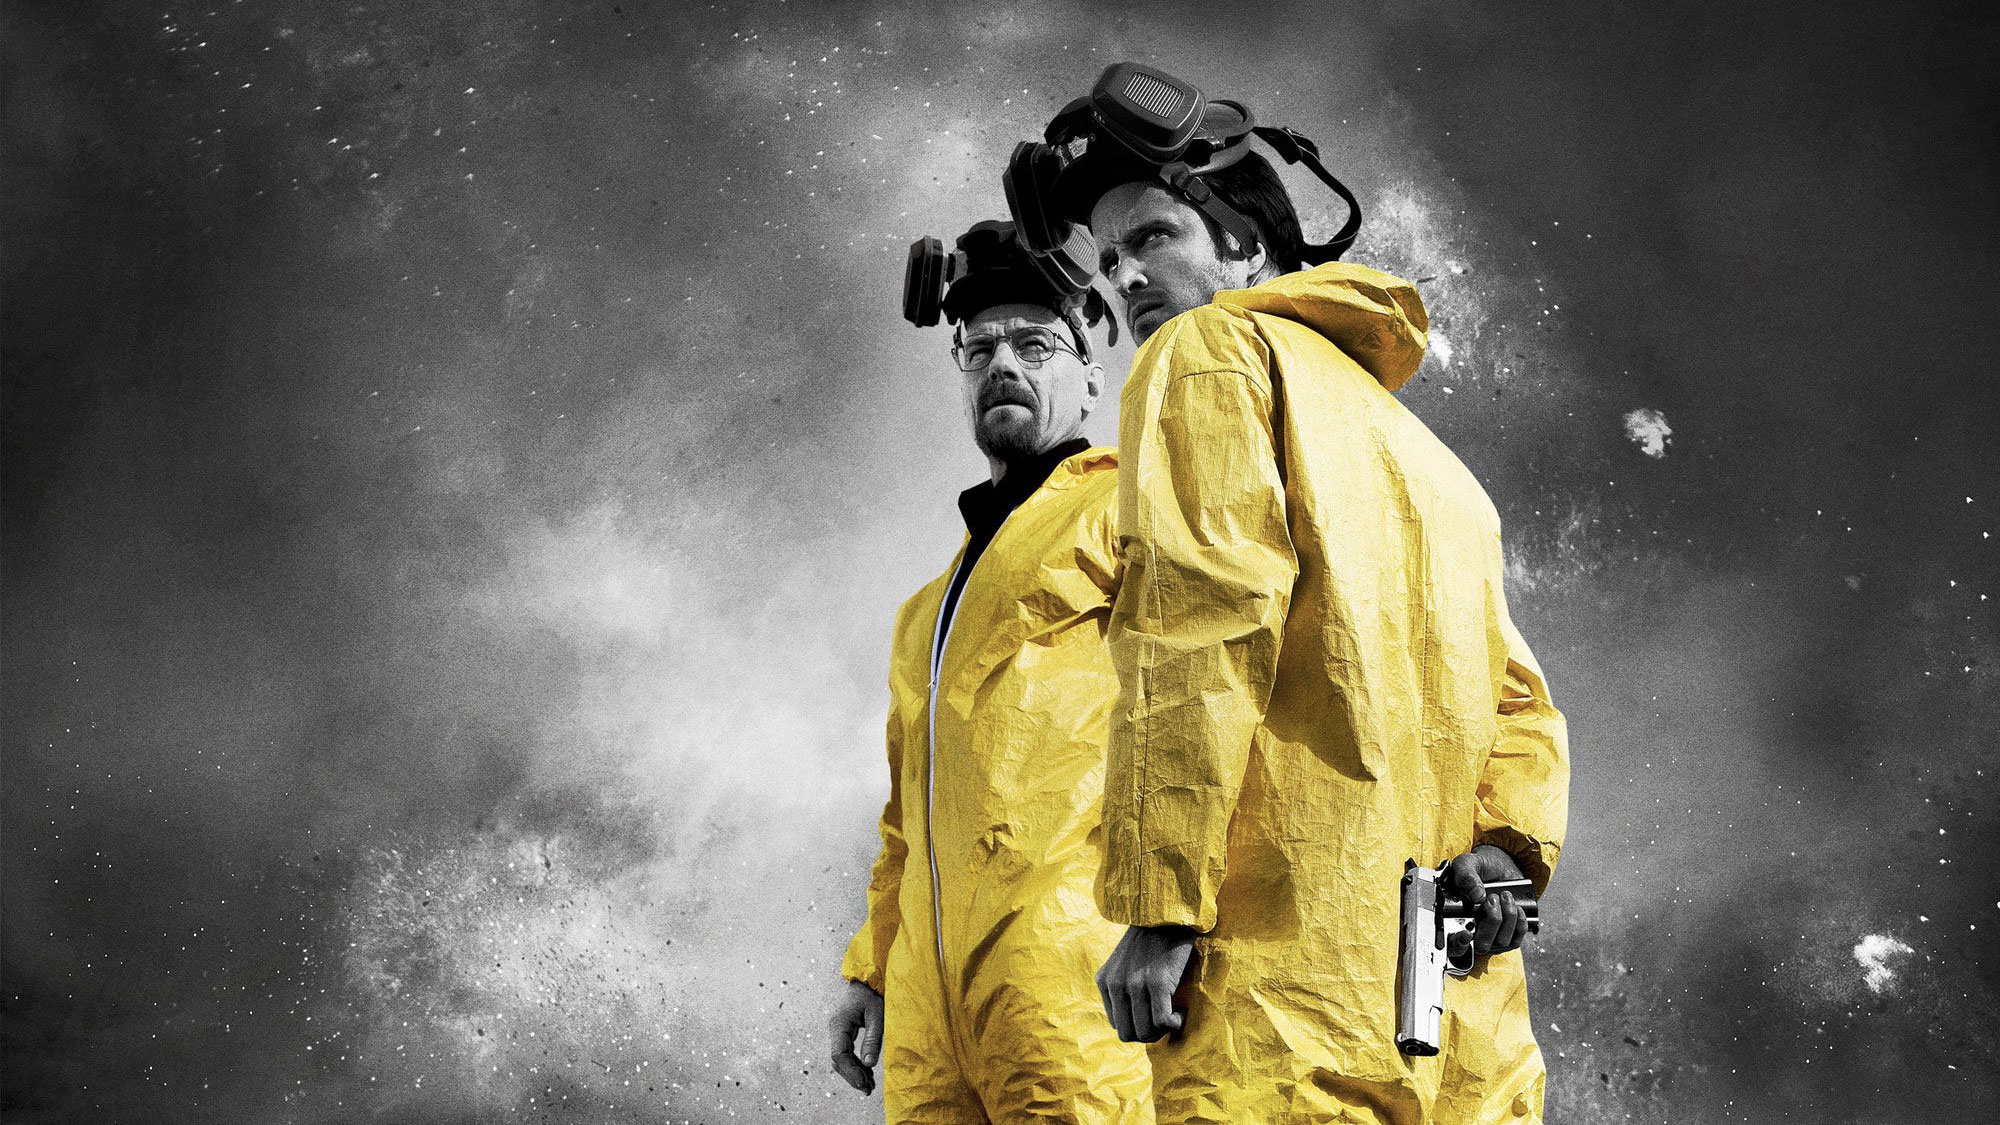 <em>Breaking Bad</em> arrive enfin sur Arte en octobre